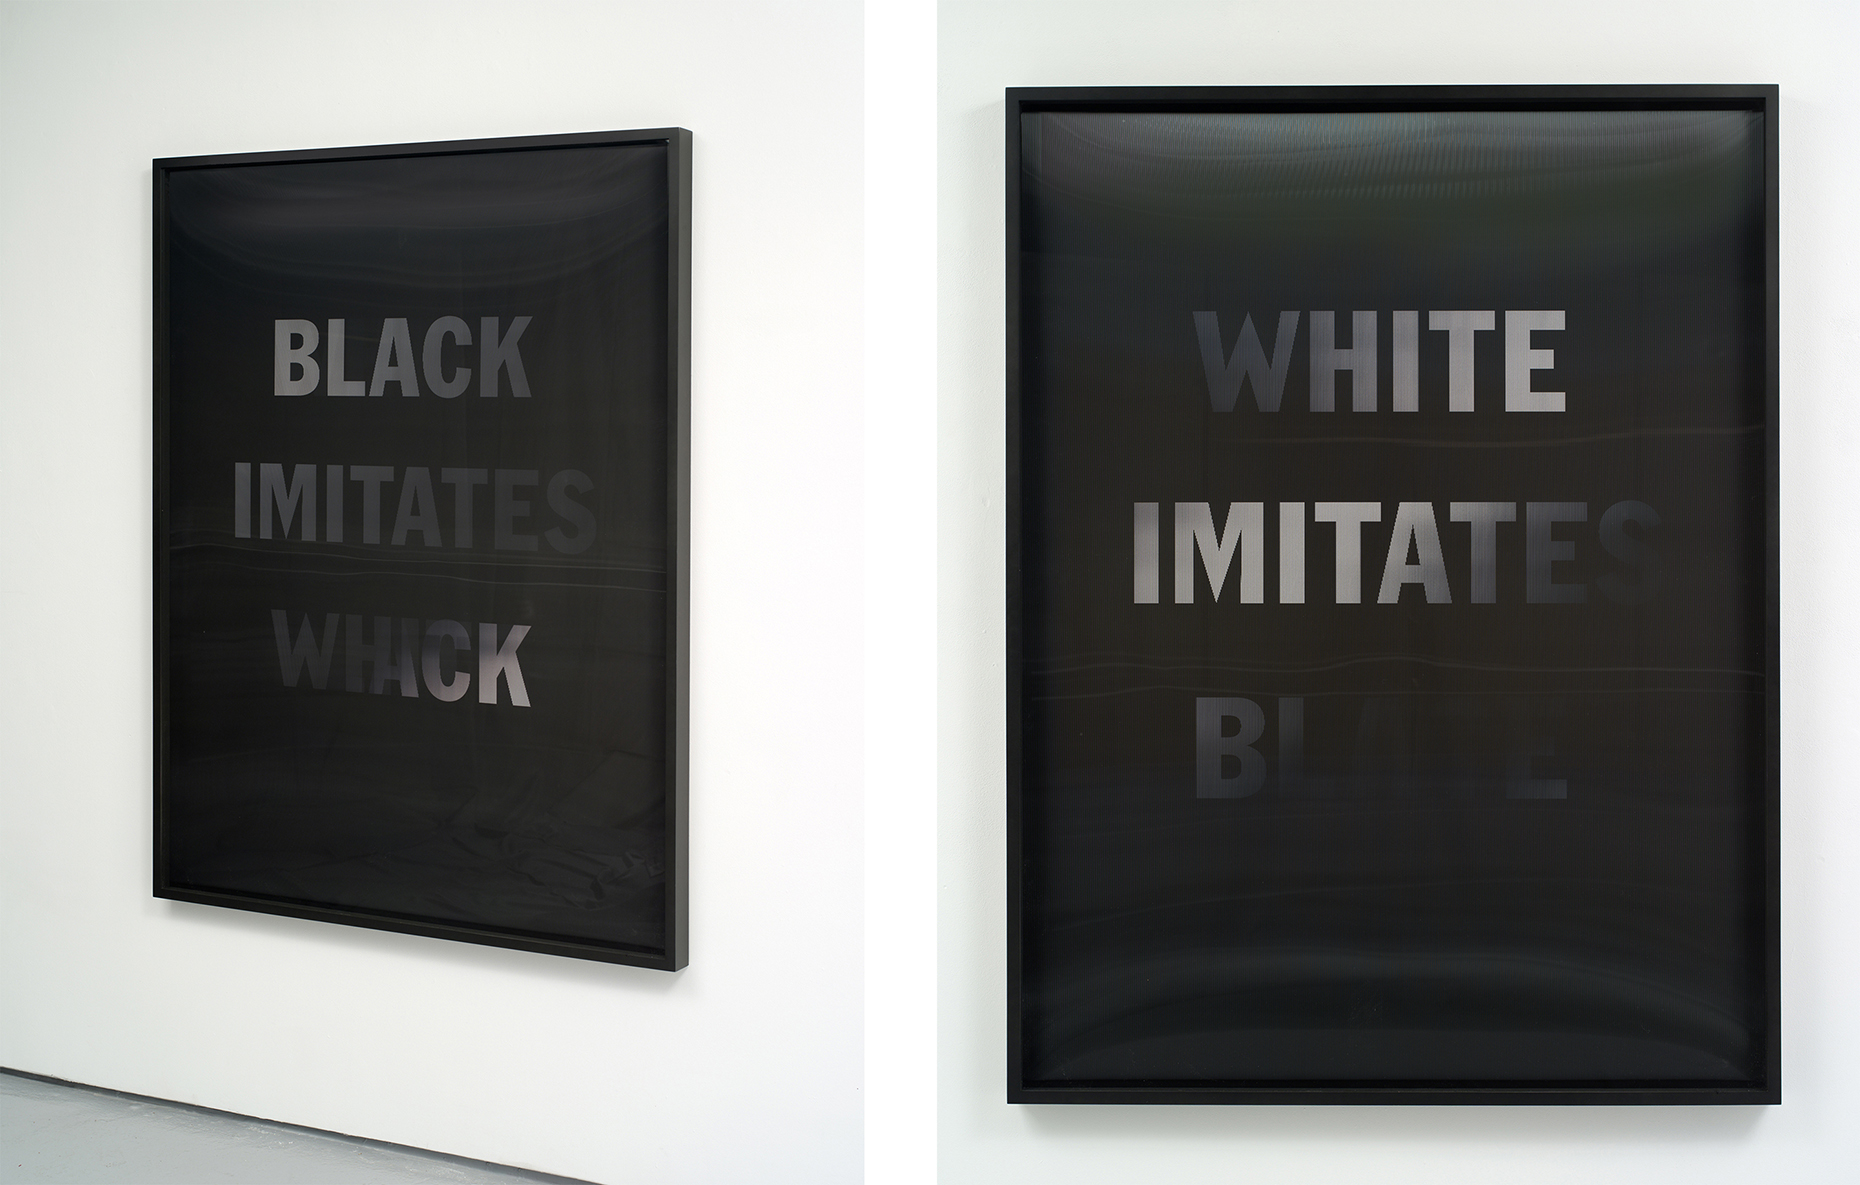 HWT_2012_Black_Imitates_White_1860